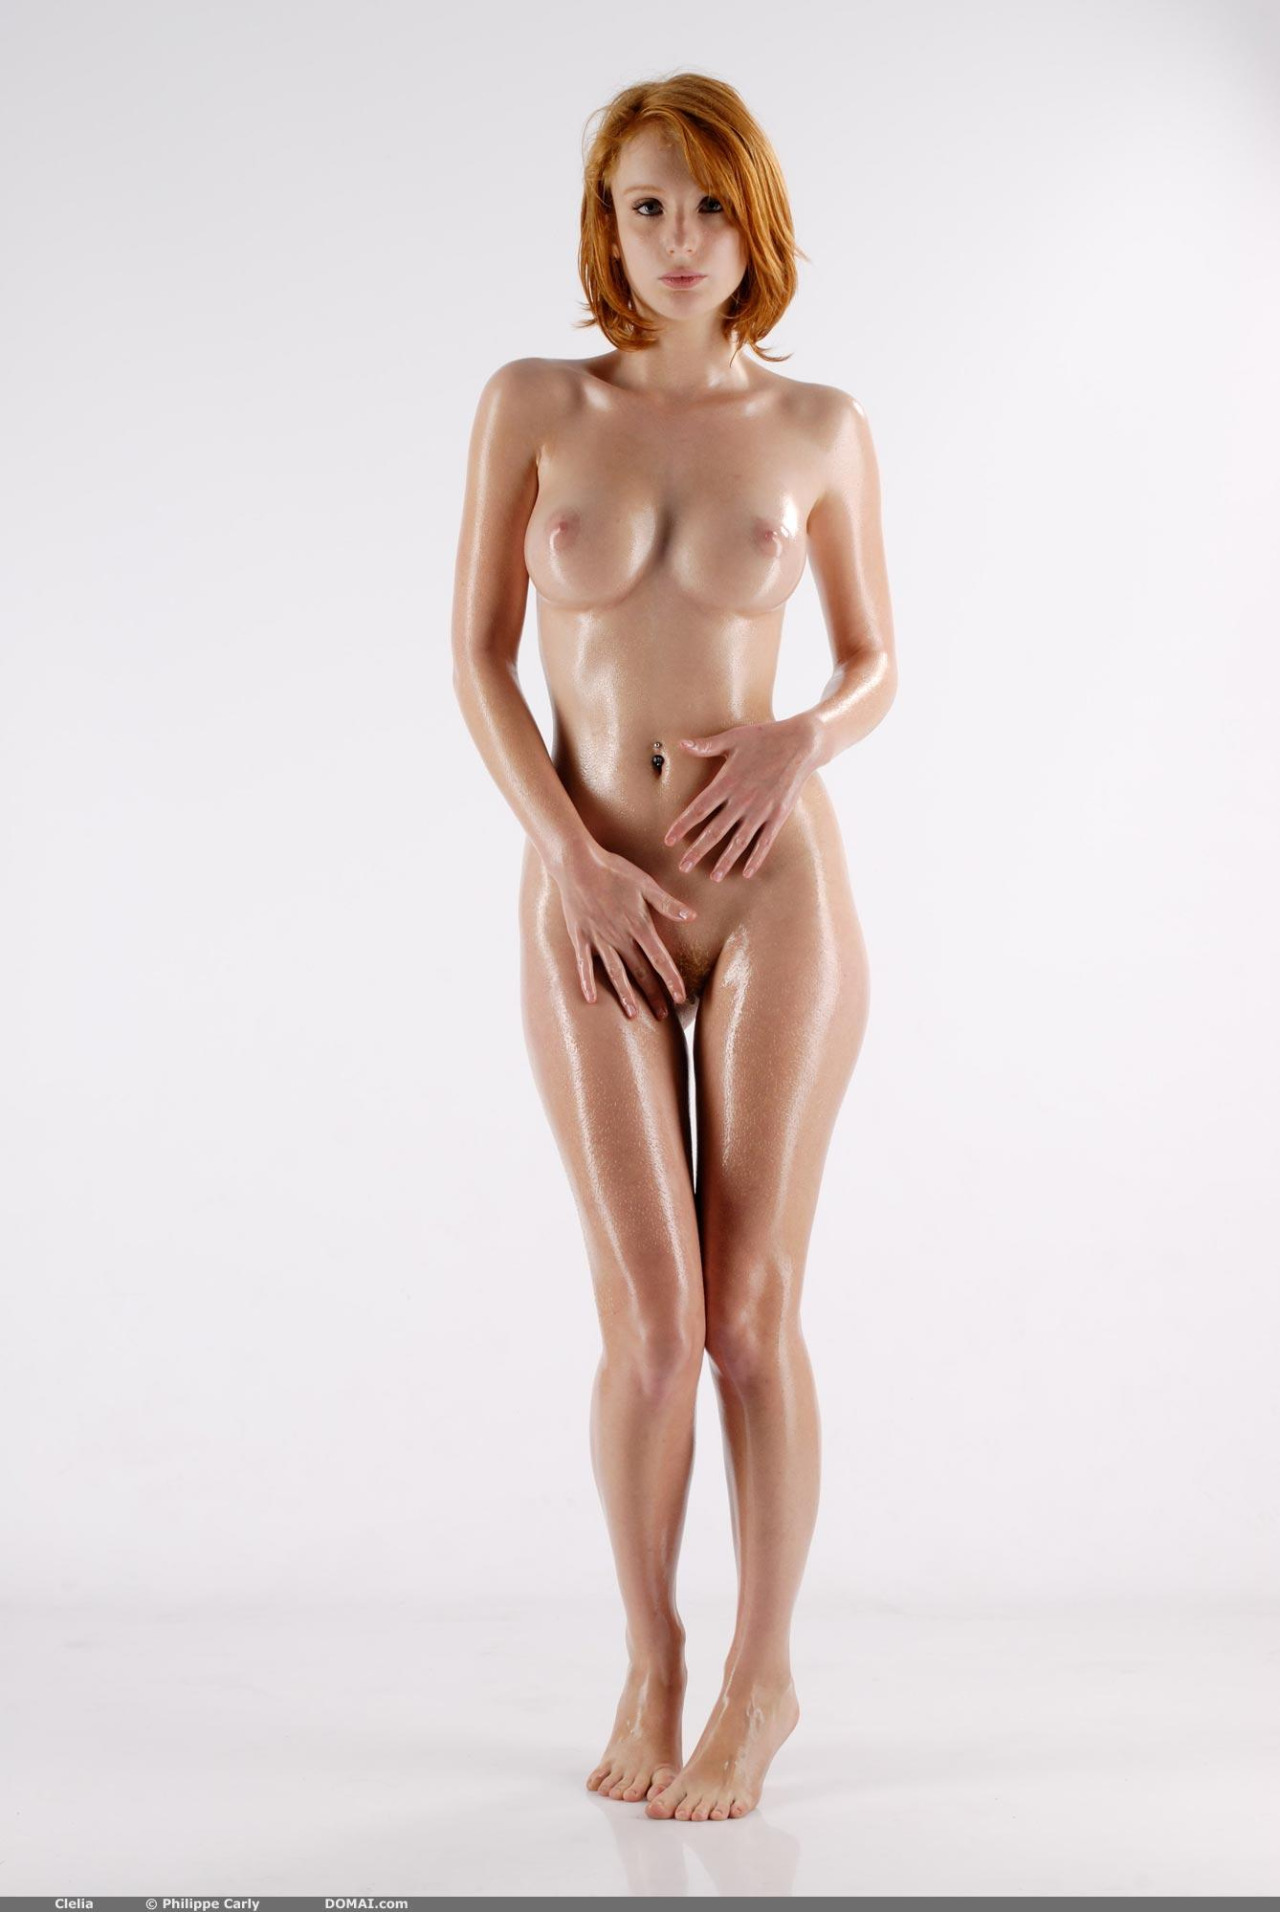 girl with large clit nude